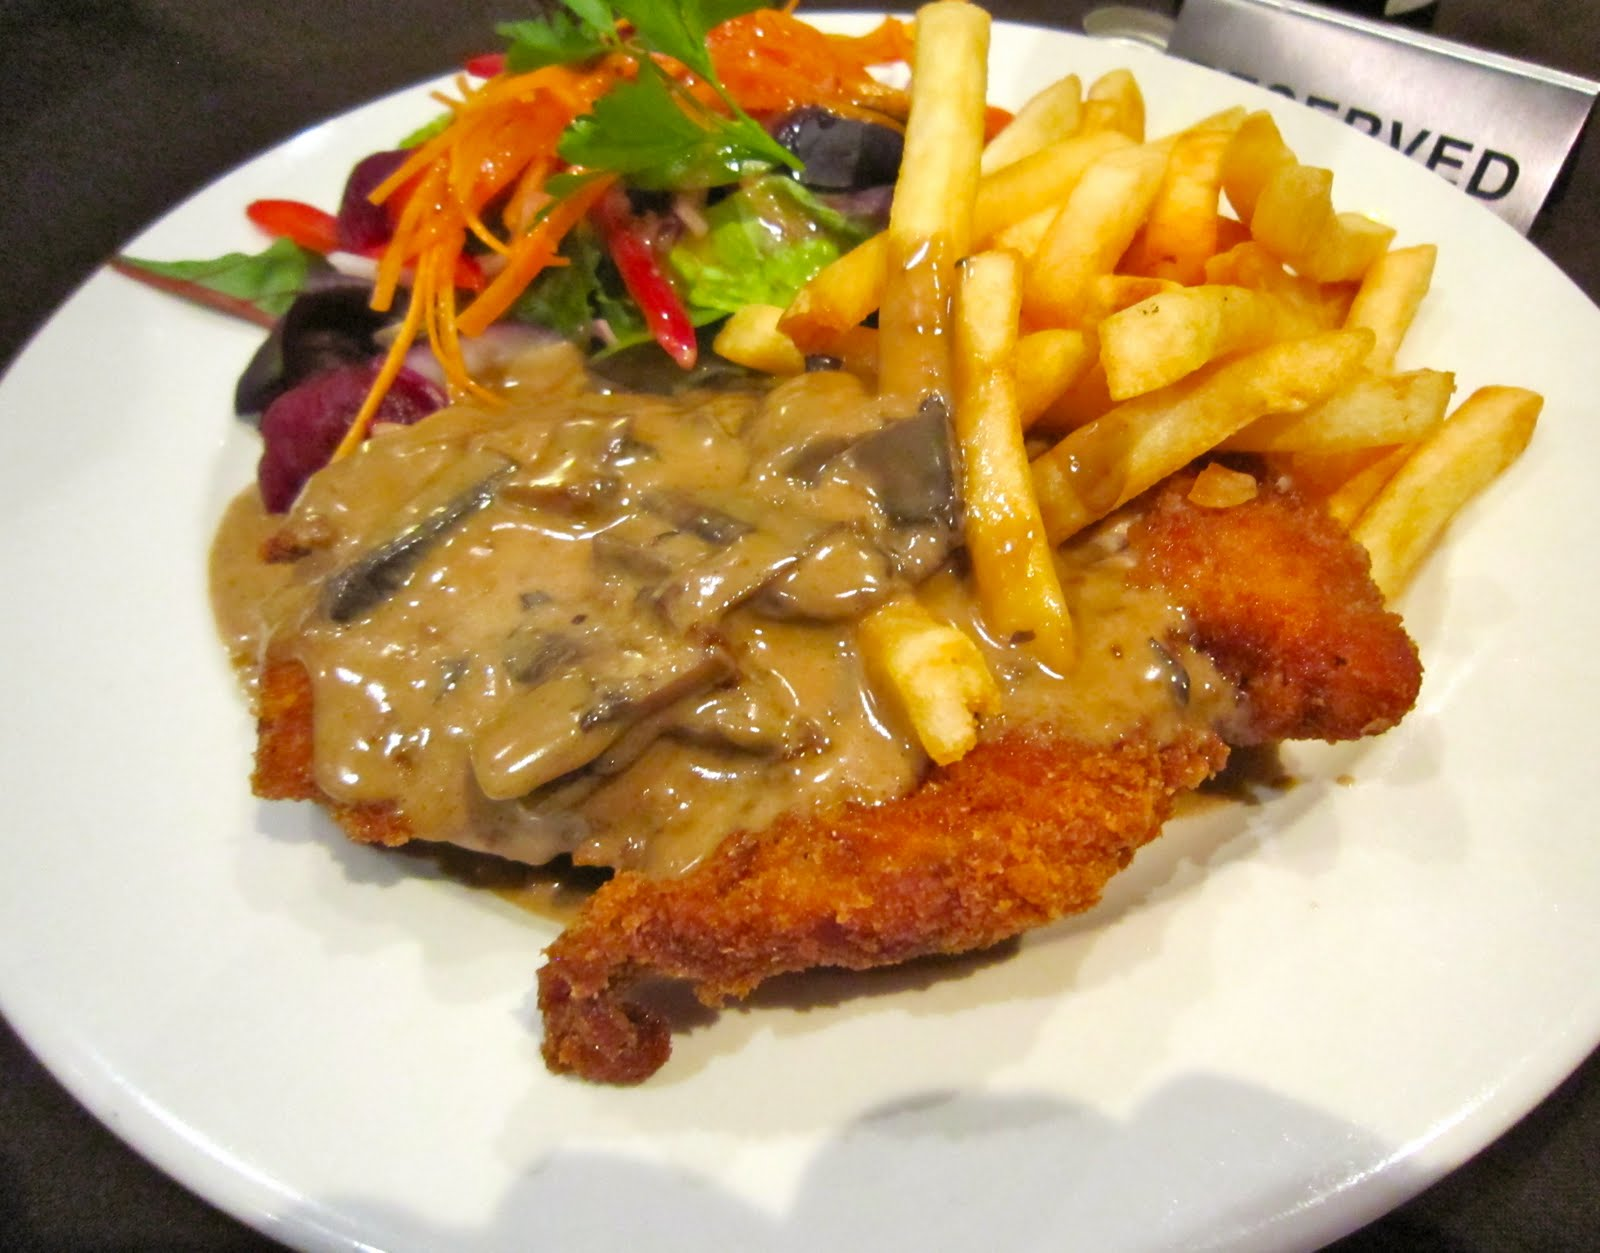 Schnitzel recipe sbs food chicken schnitzel photo myfamilytable